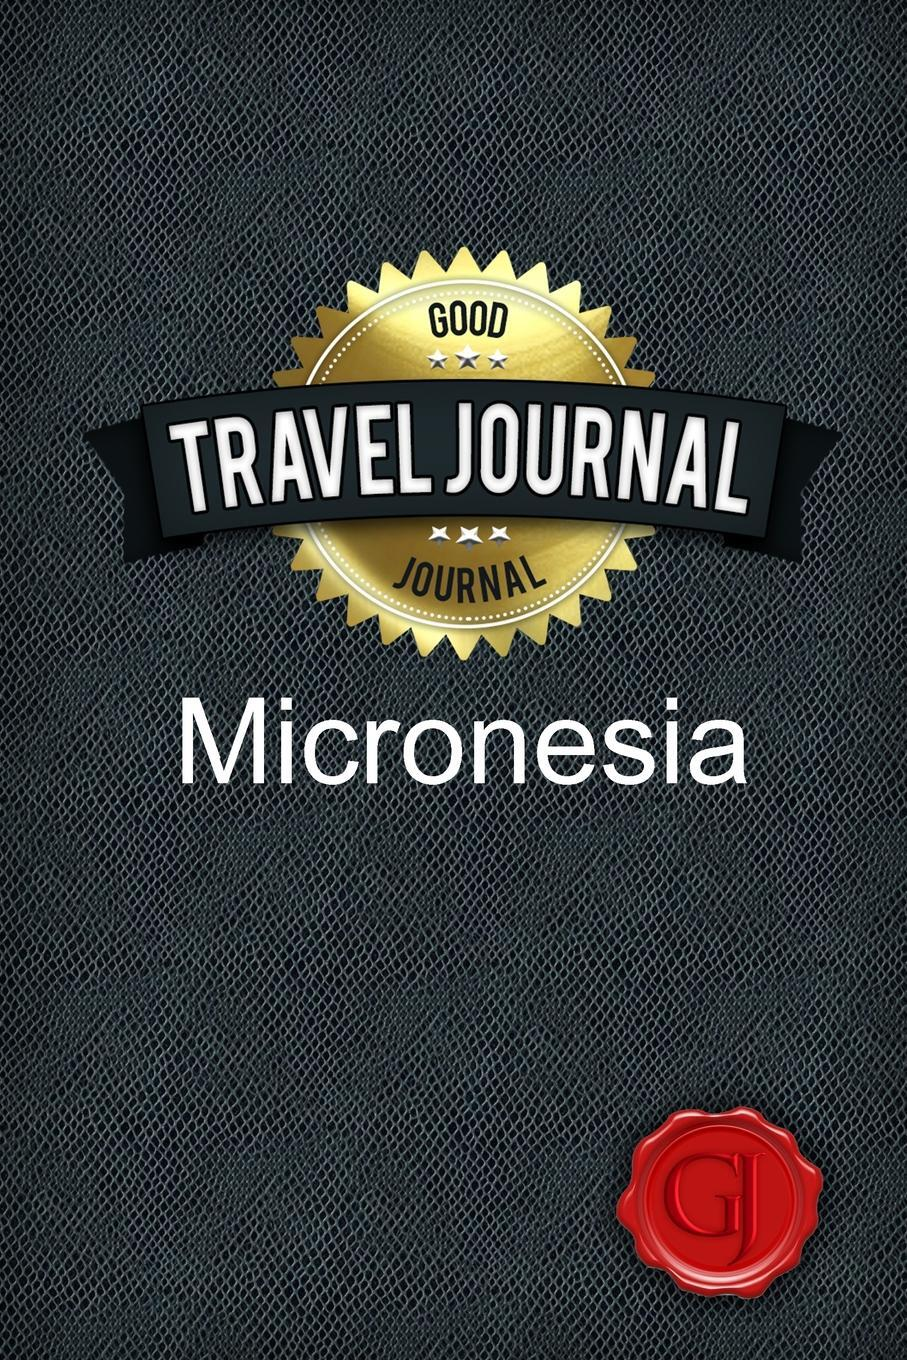 Travel Journal Micronesia. Good Journal